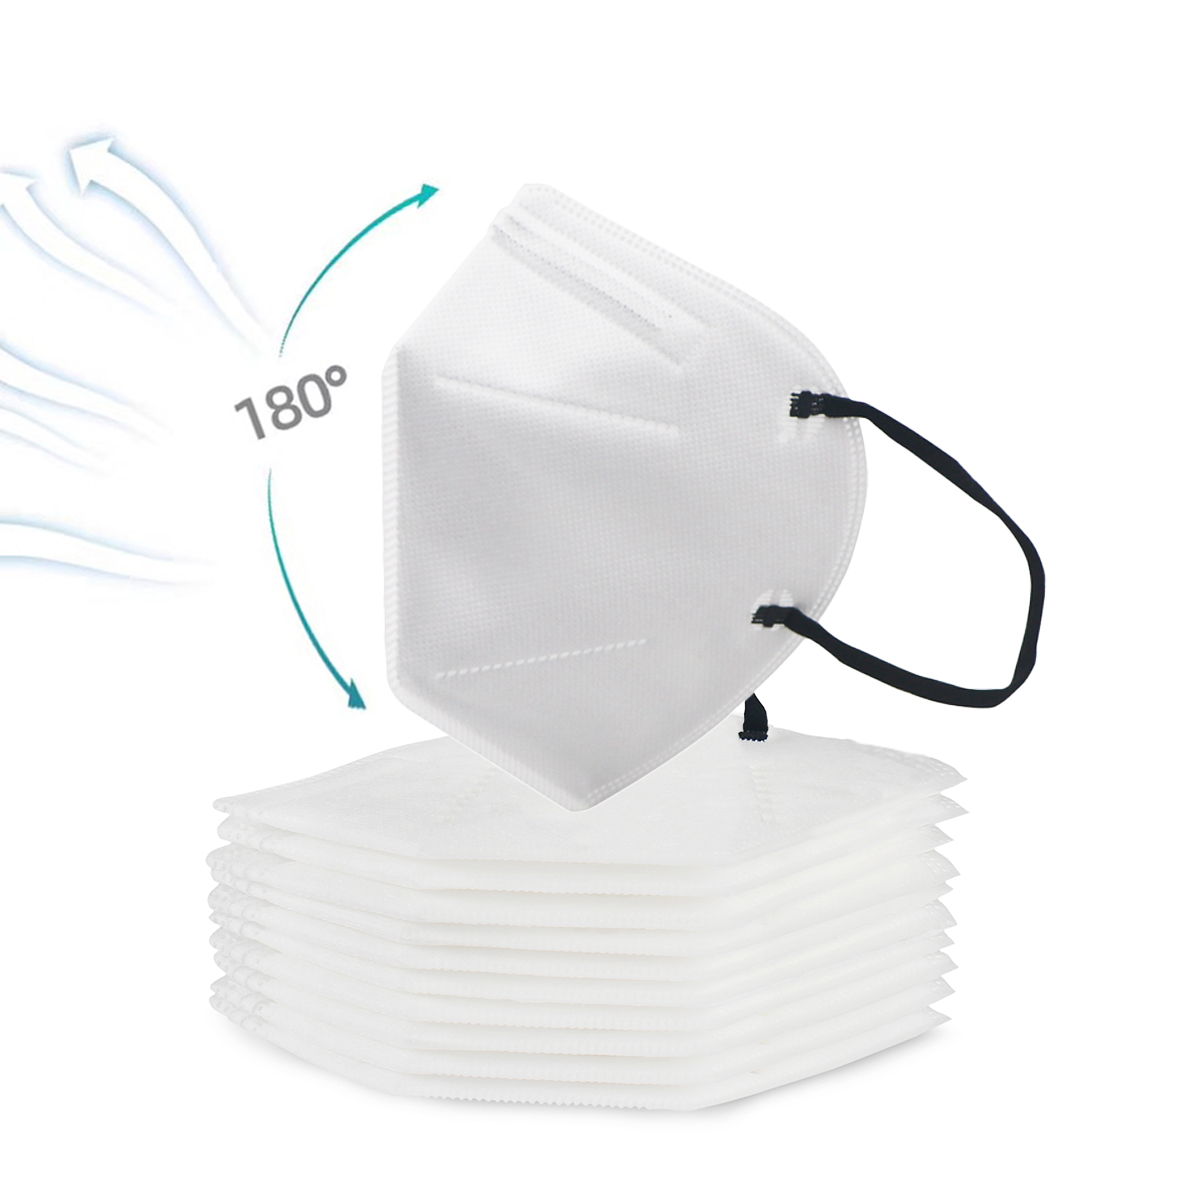 Fedex Fast Shipping KN95 Masks Dustproof Anti fog And Breathable Face Masks 95 Filtration Anti Virus